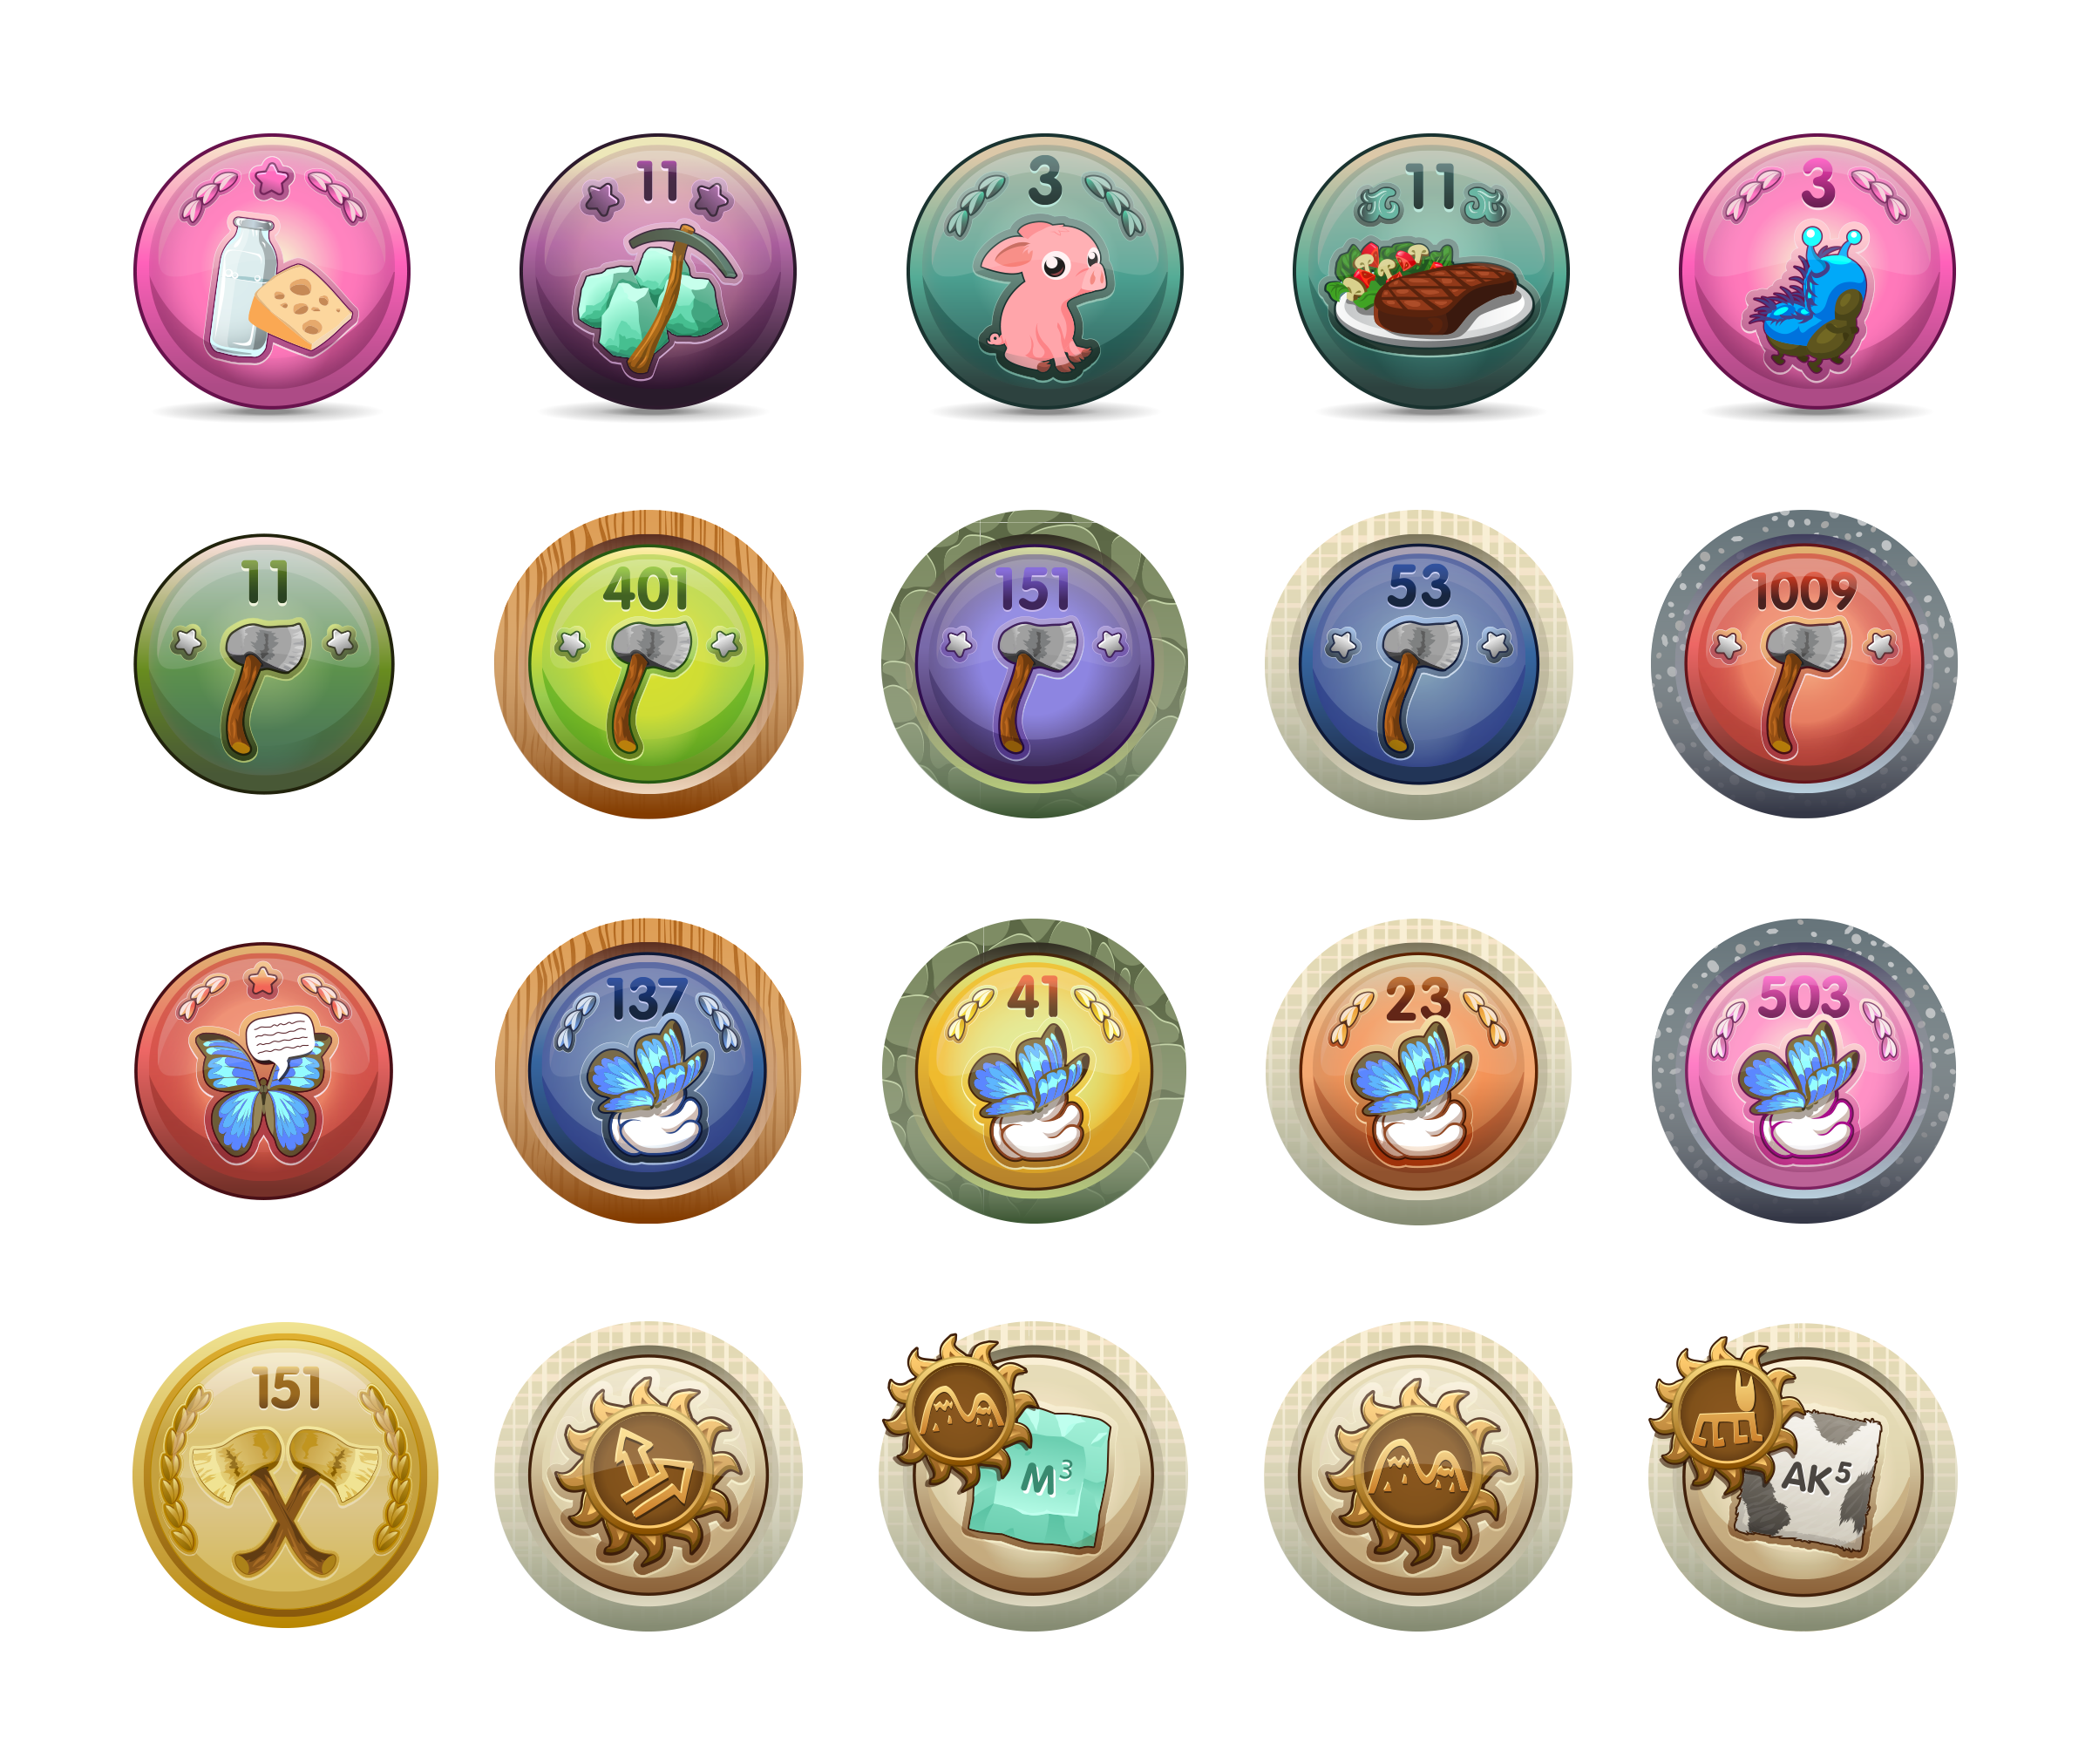 Glitch Award Badges System